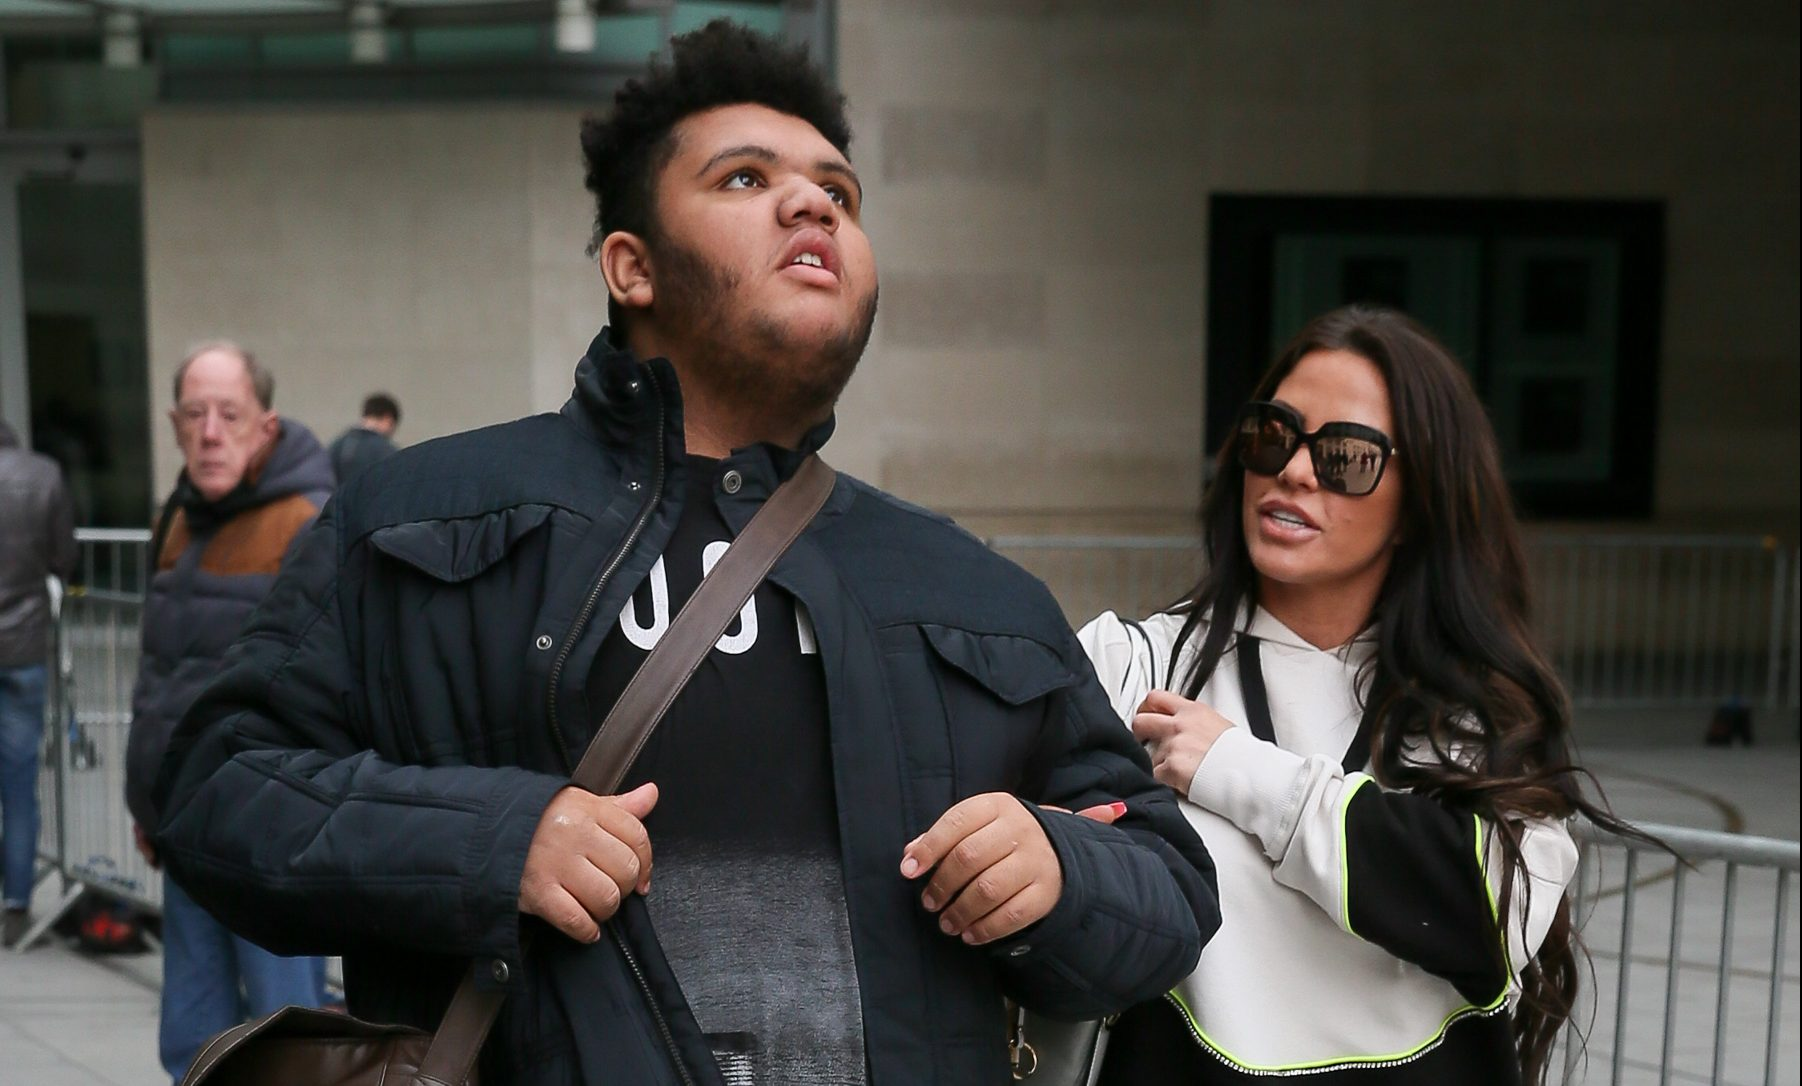 Katie Price's son Harvey makes emotional plea to trolls to stop bullying him